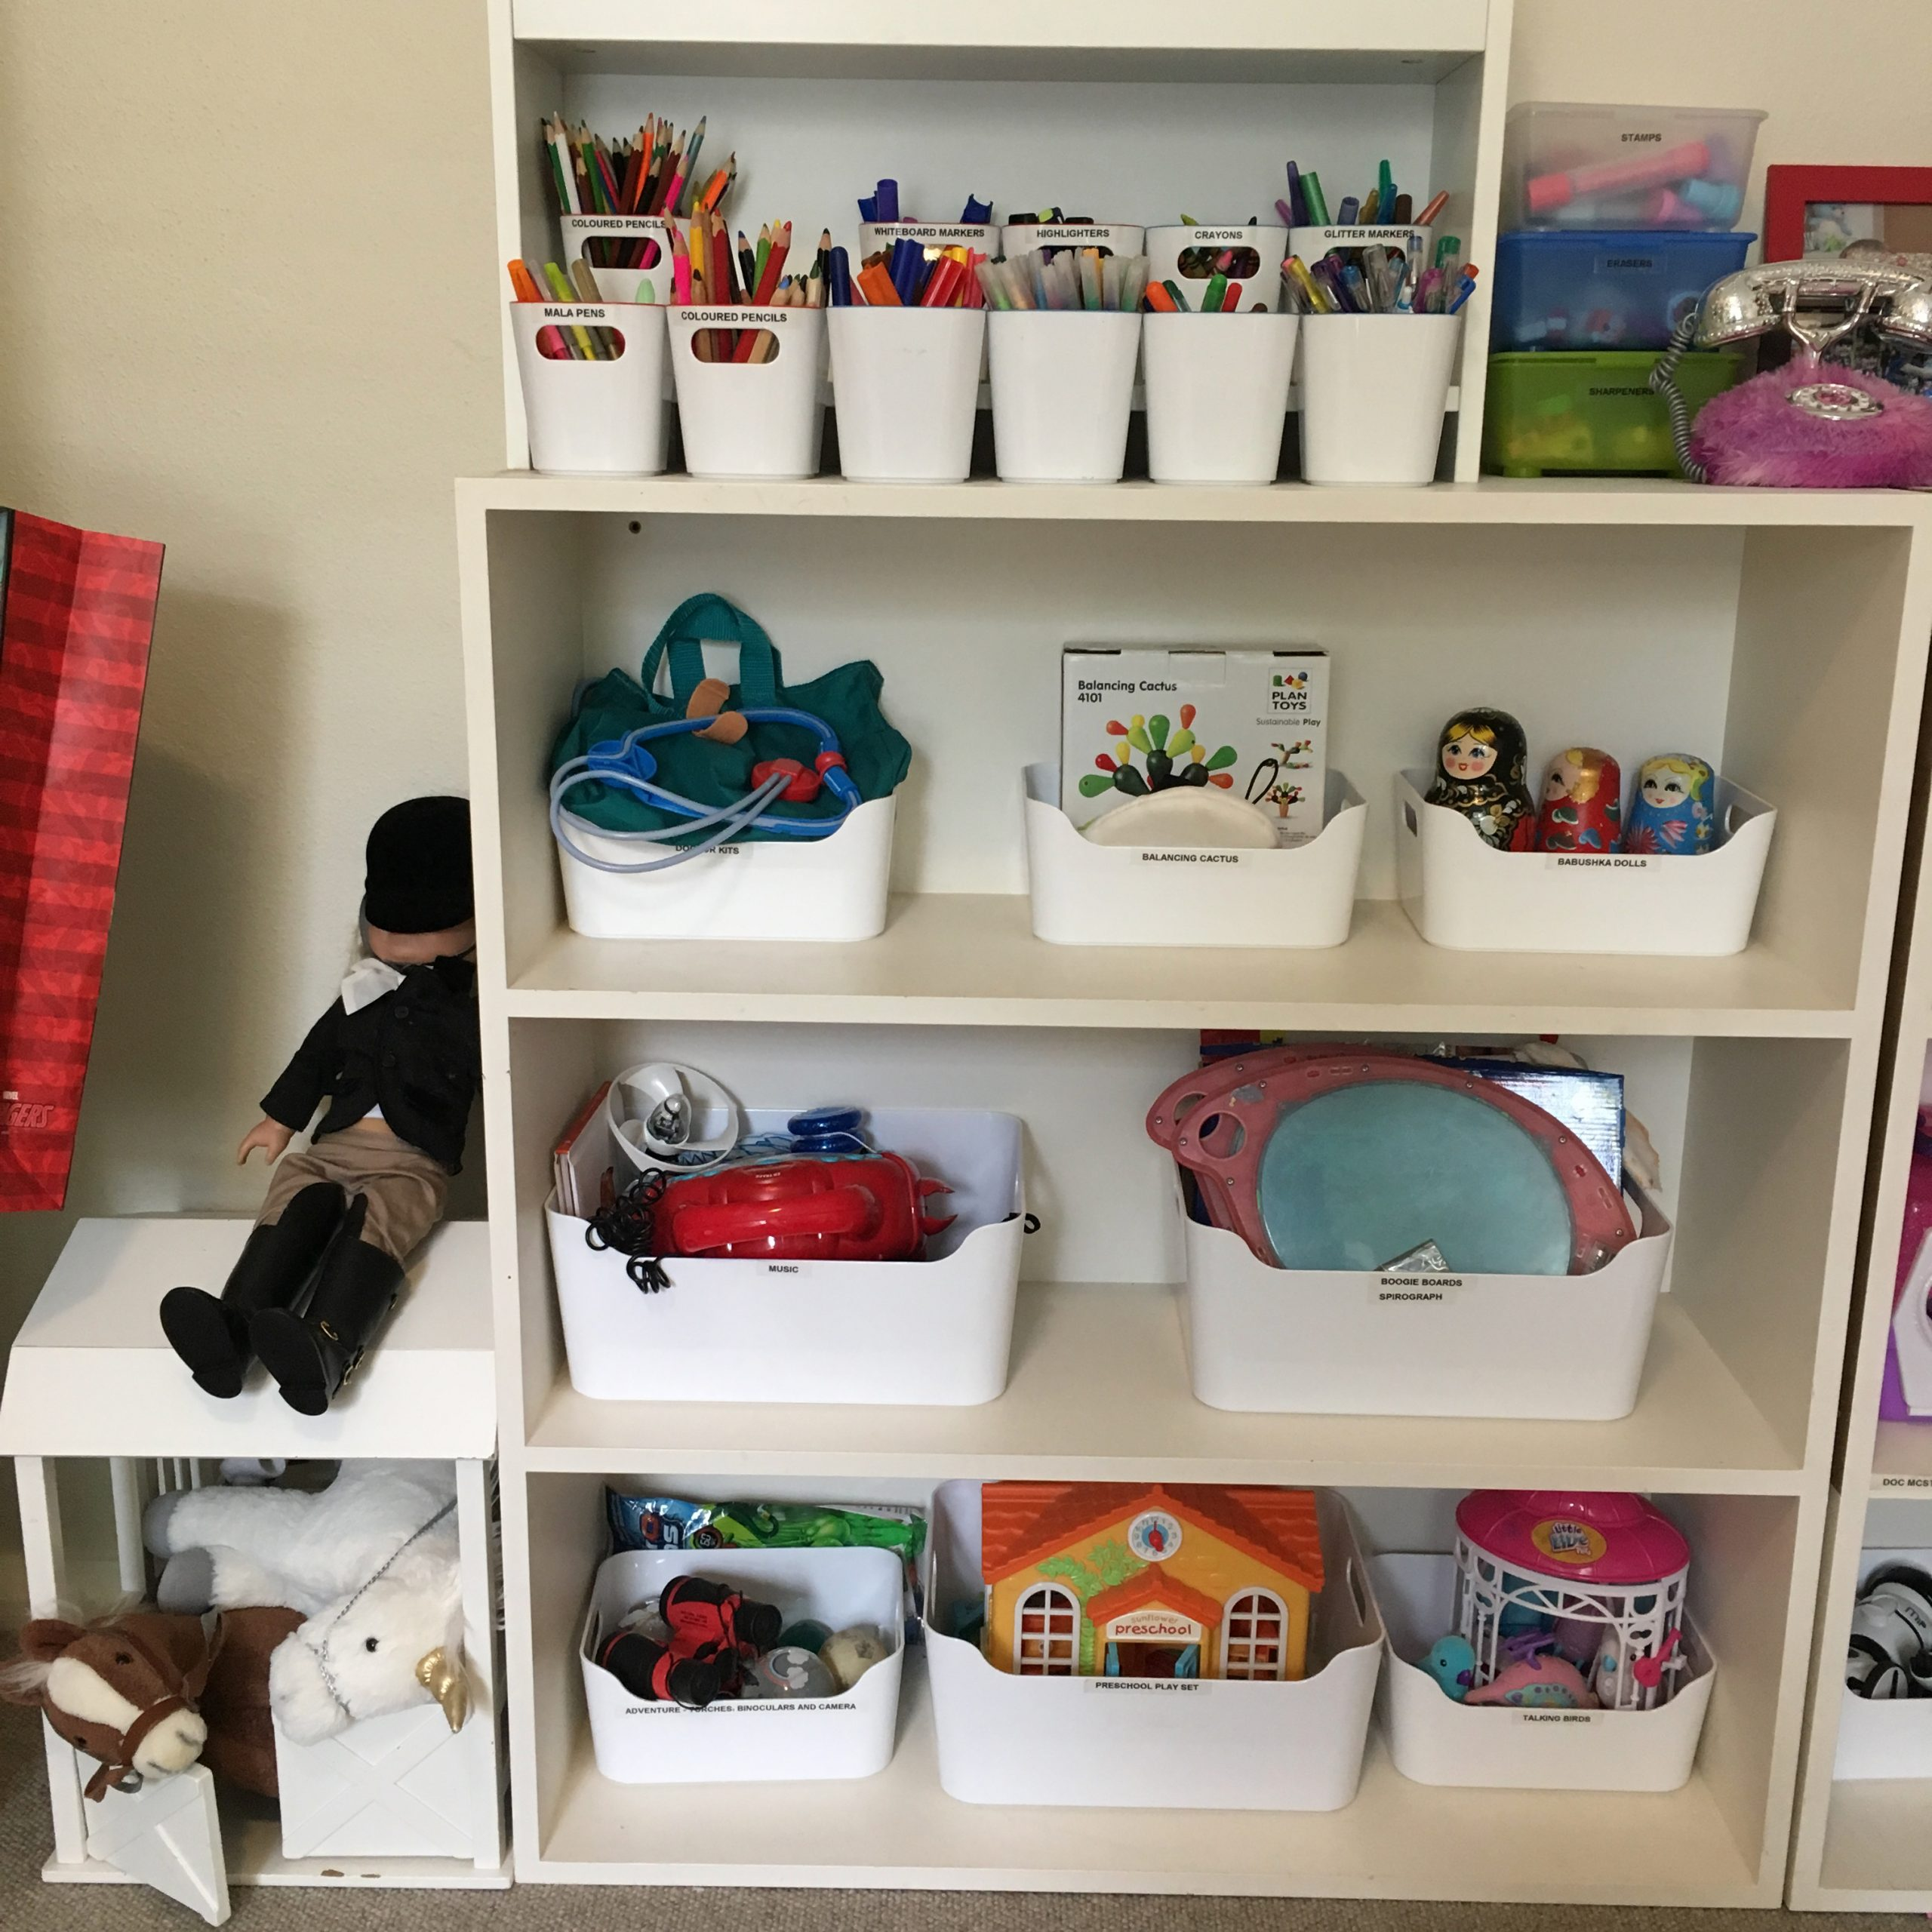 Playroom Toy Storage Organisation - The Organising Bee Canberra